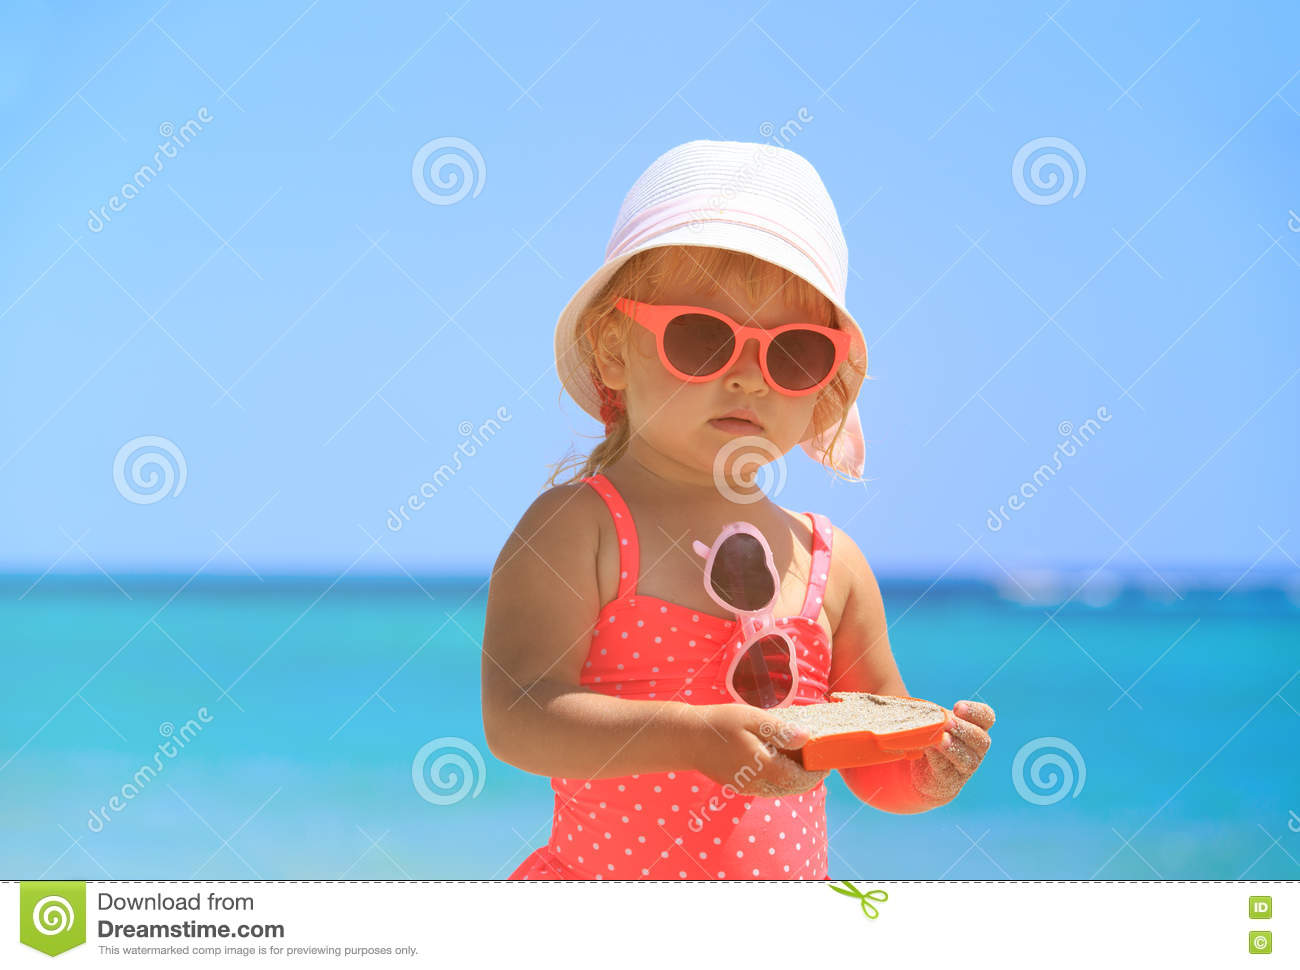 bc5cf2e69d40 Cute Little Girl Play On Sand Beach Stock Image - Image of toddler ...